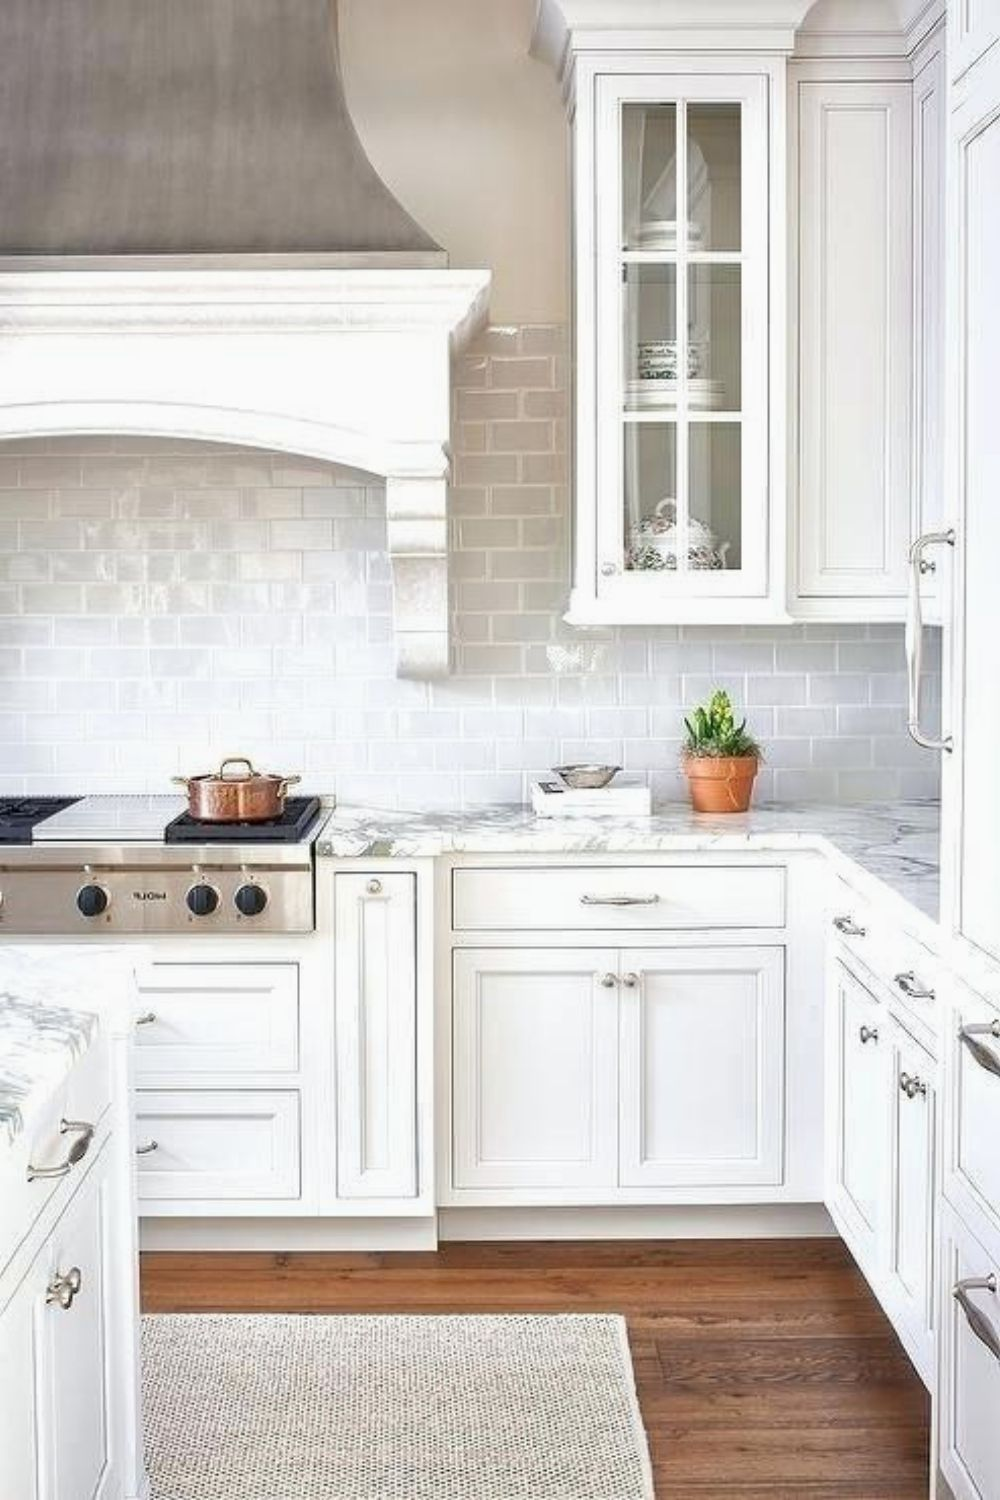 Ultimate White Kitchen Creamy to add to your own home 845 #closetdesign #kitchendecor #kitchens #luxurykitchen #closets #KitchenCabinets #WhiteKitchen #kitchenideas #kitchendesignidea